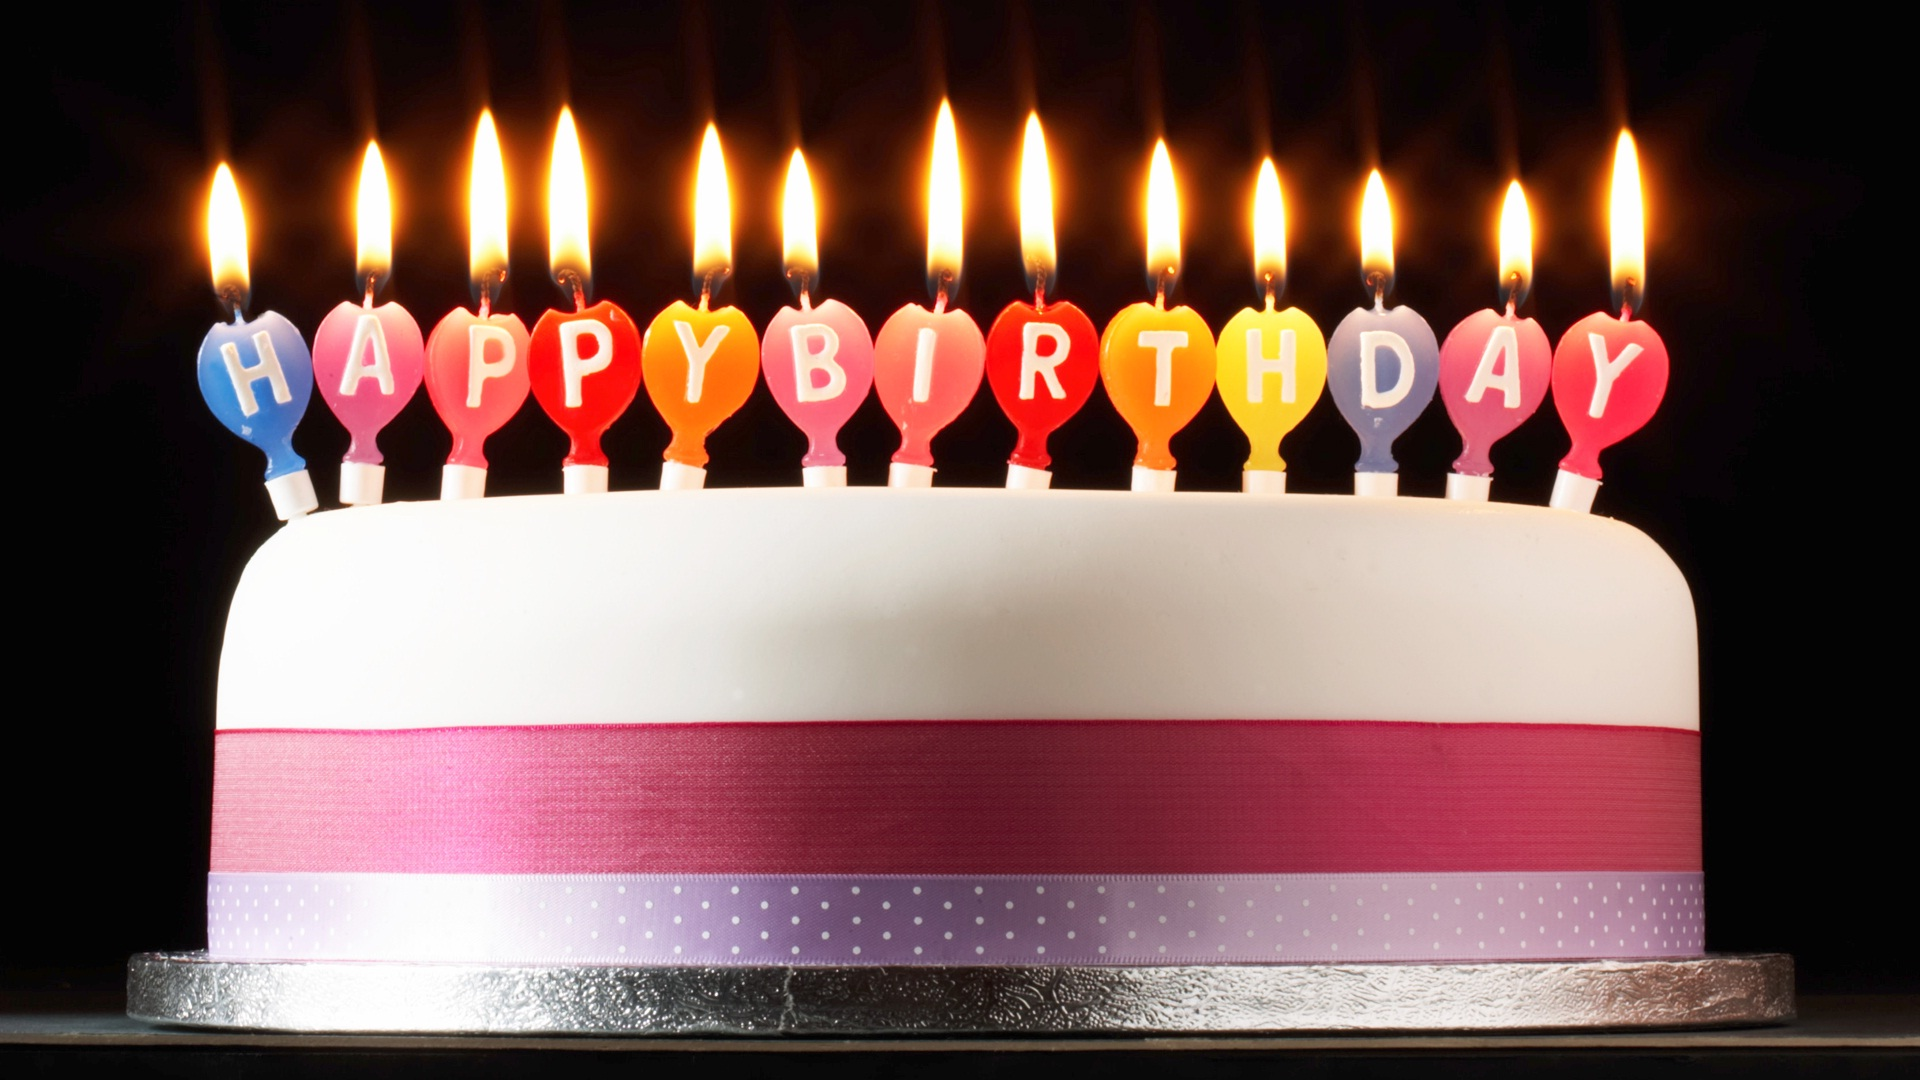 happy birthday wishes hd images free download ; Happy-Birthday-Cake-Images